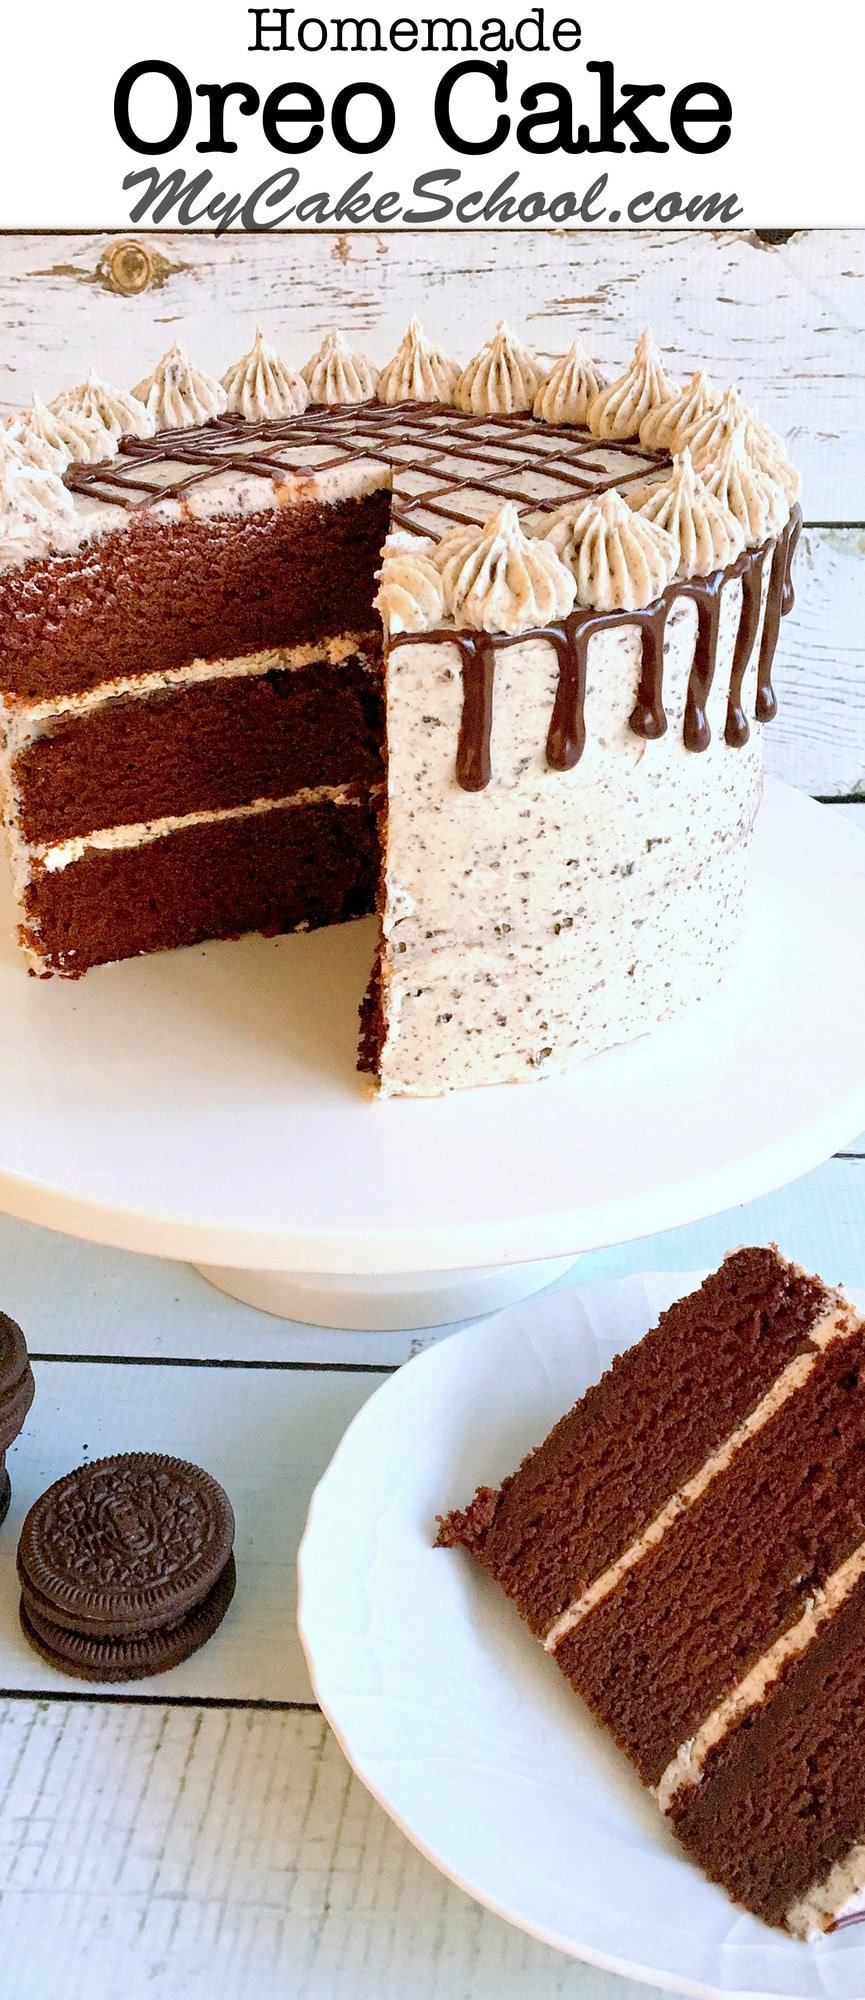 AMAZING Oreo Cake Recipe with moist and decadent chocolate cake layers, ganache, and Oreo Buttercream Frosting! You've got to try this fantastic homemade cake!